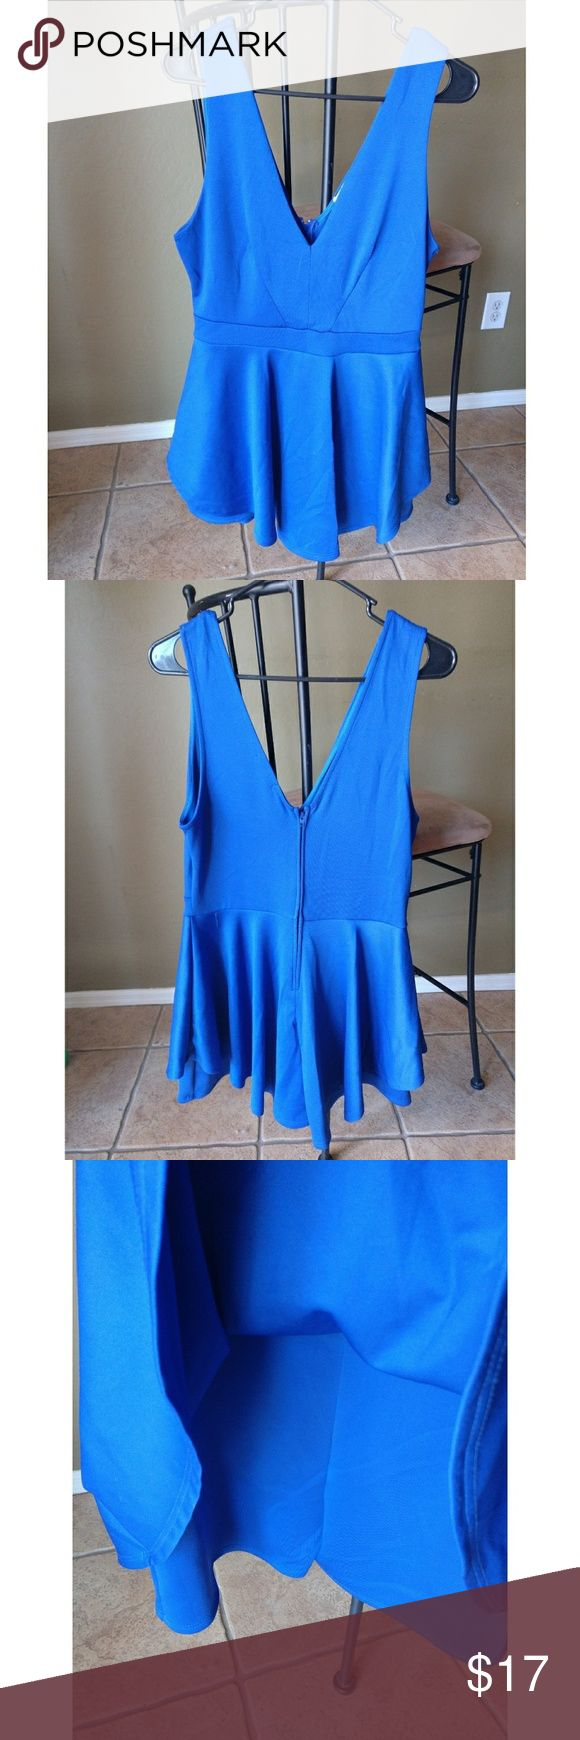 Charlotte Russe Cobalt Blue Dress V neck and back dress with attached shorts underneath skirt in size L. Charlotte Russe Dresses Mini